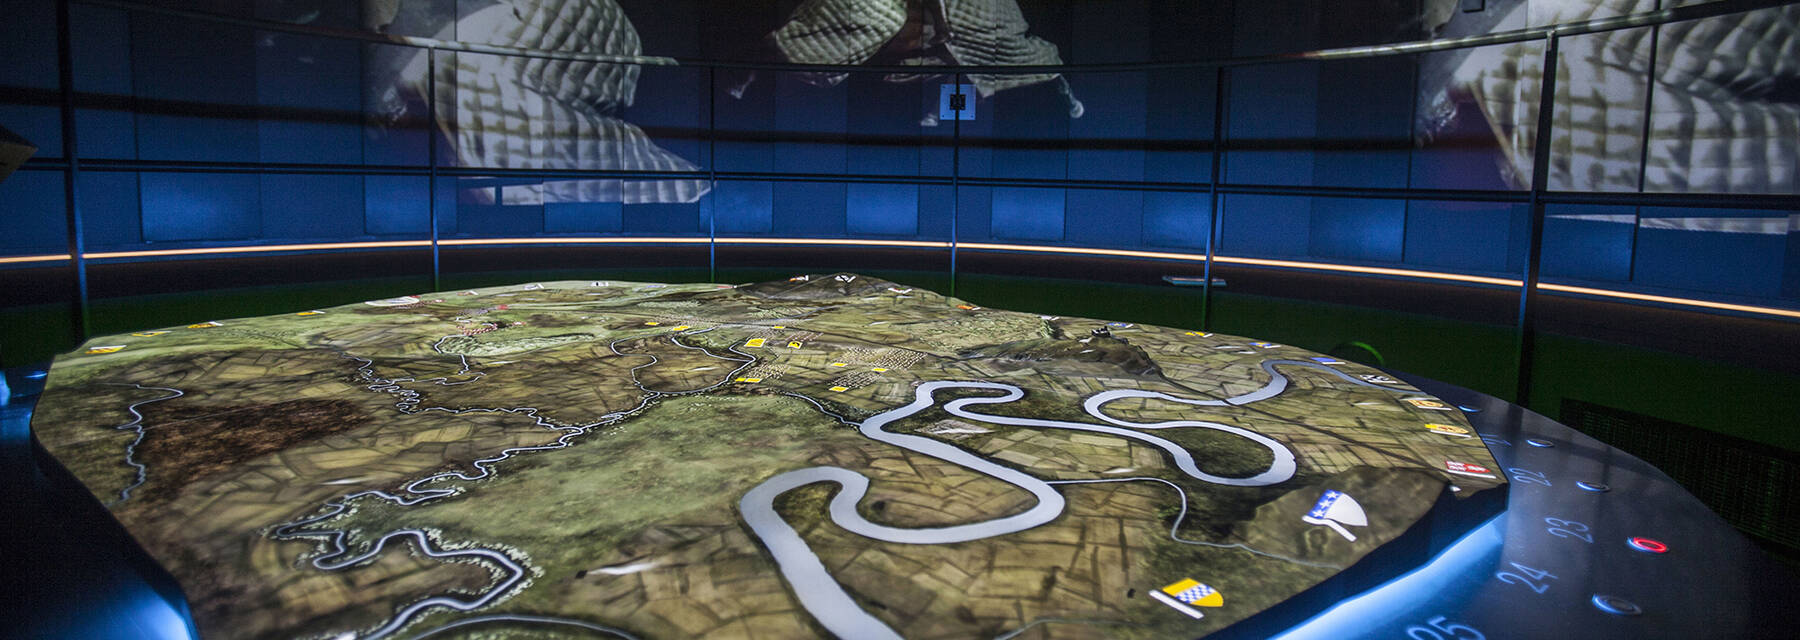 A view of the lit, digital battle table at the Battle of Bannockburn experience. The table shows a map of the battle area, with various heraldic flags around the outside. The walls of the dark room are covered with panels that have images of knights on horses.